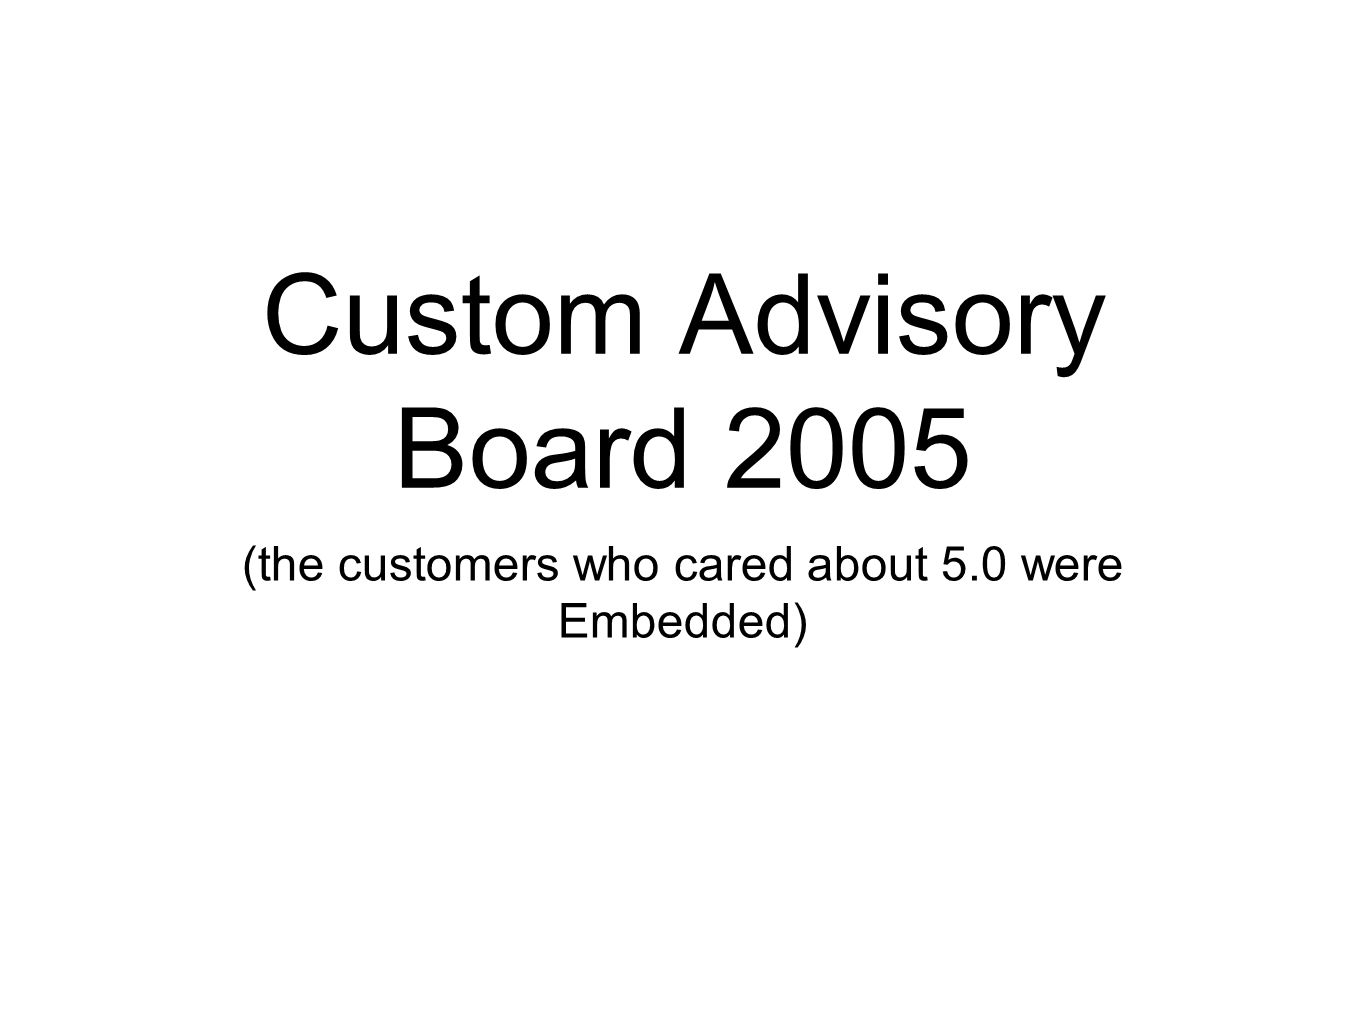 Custom Advisory Board 2005 (the customers who cared about 5.0 were Embedded)